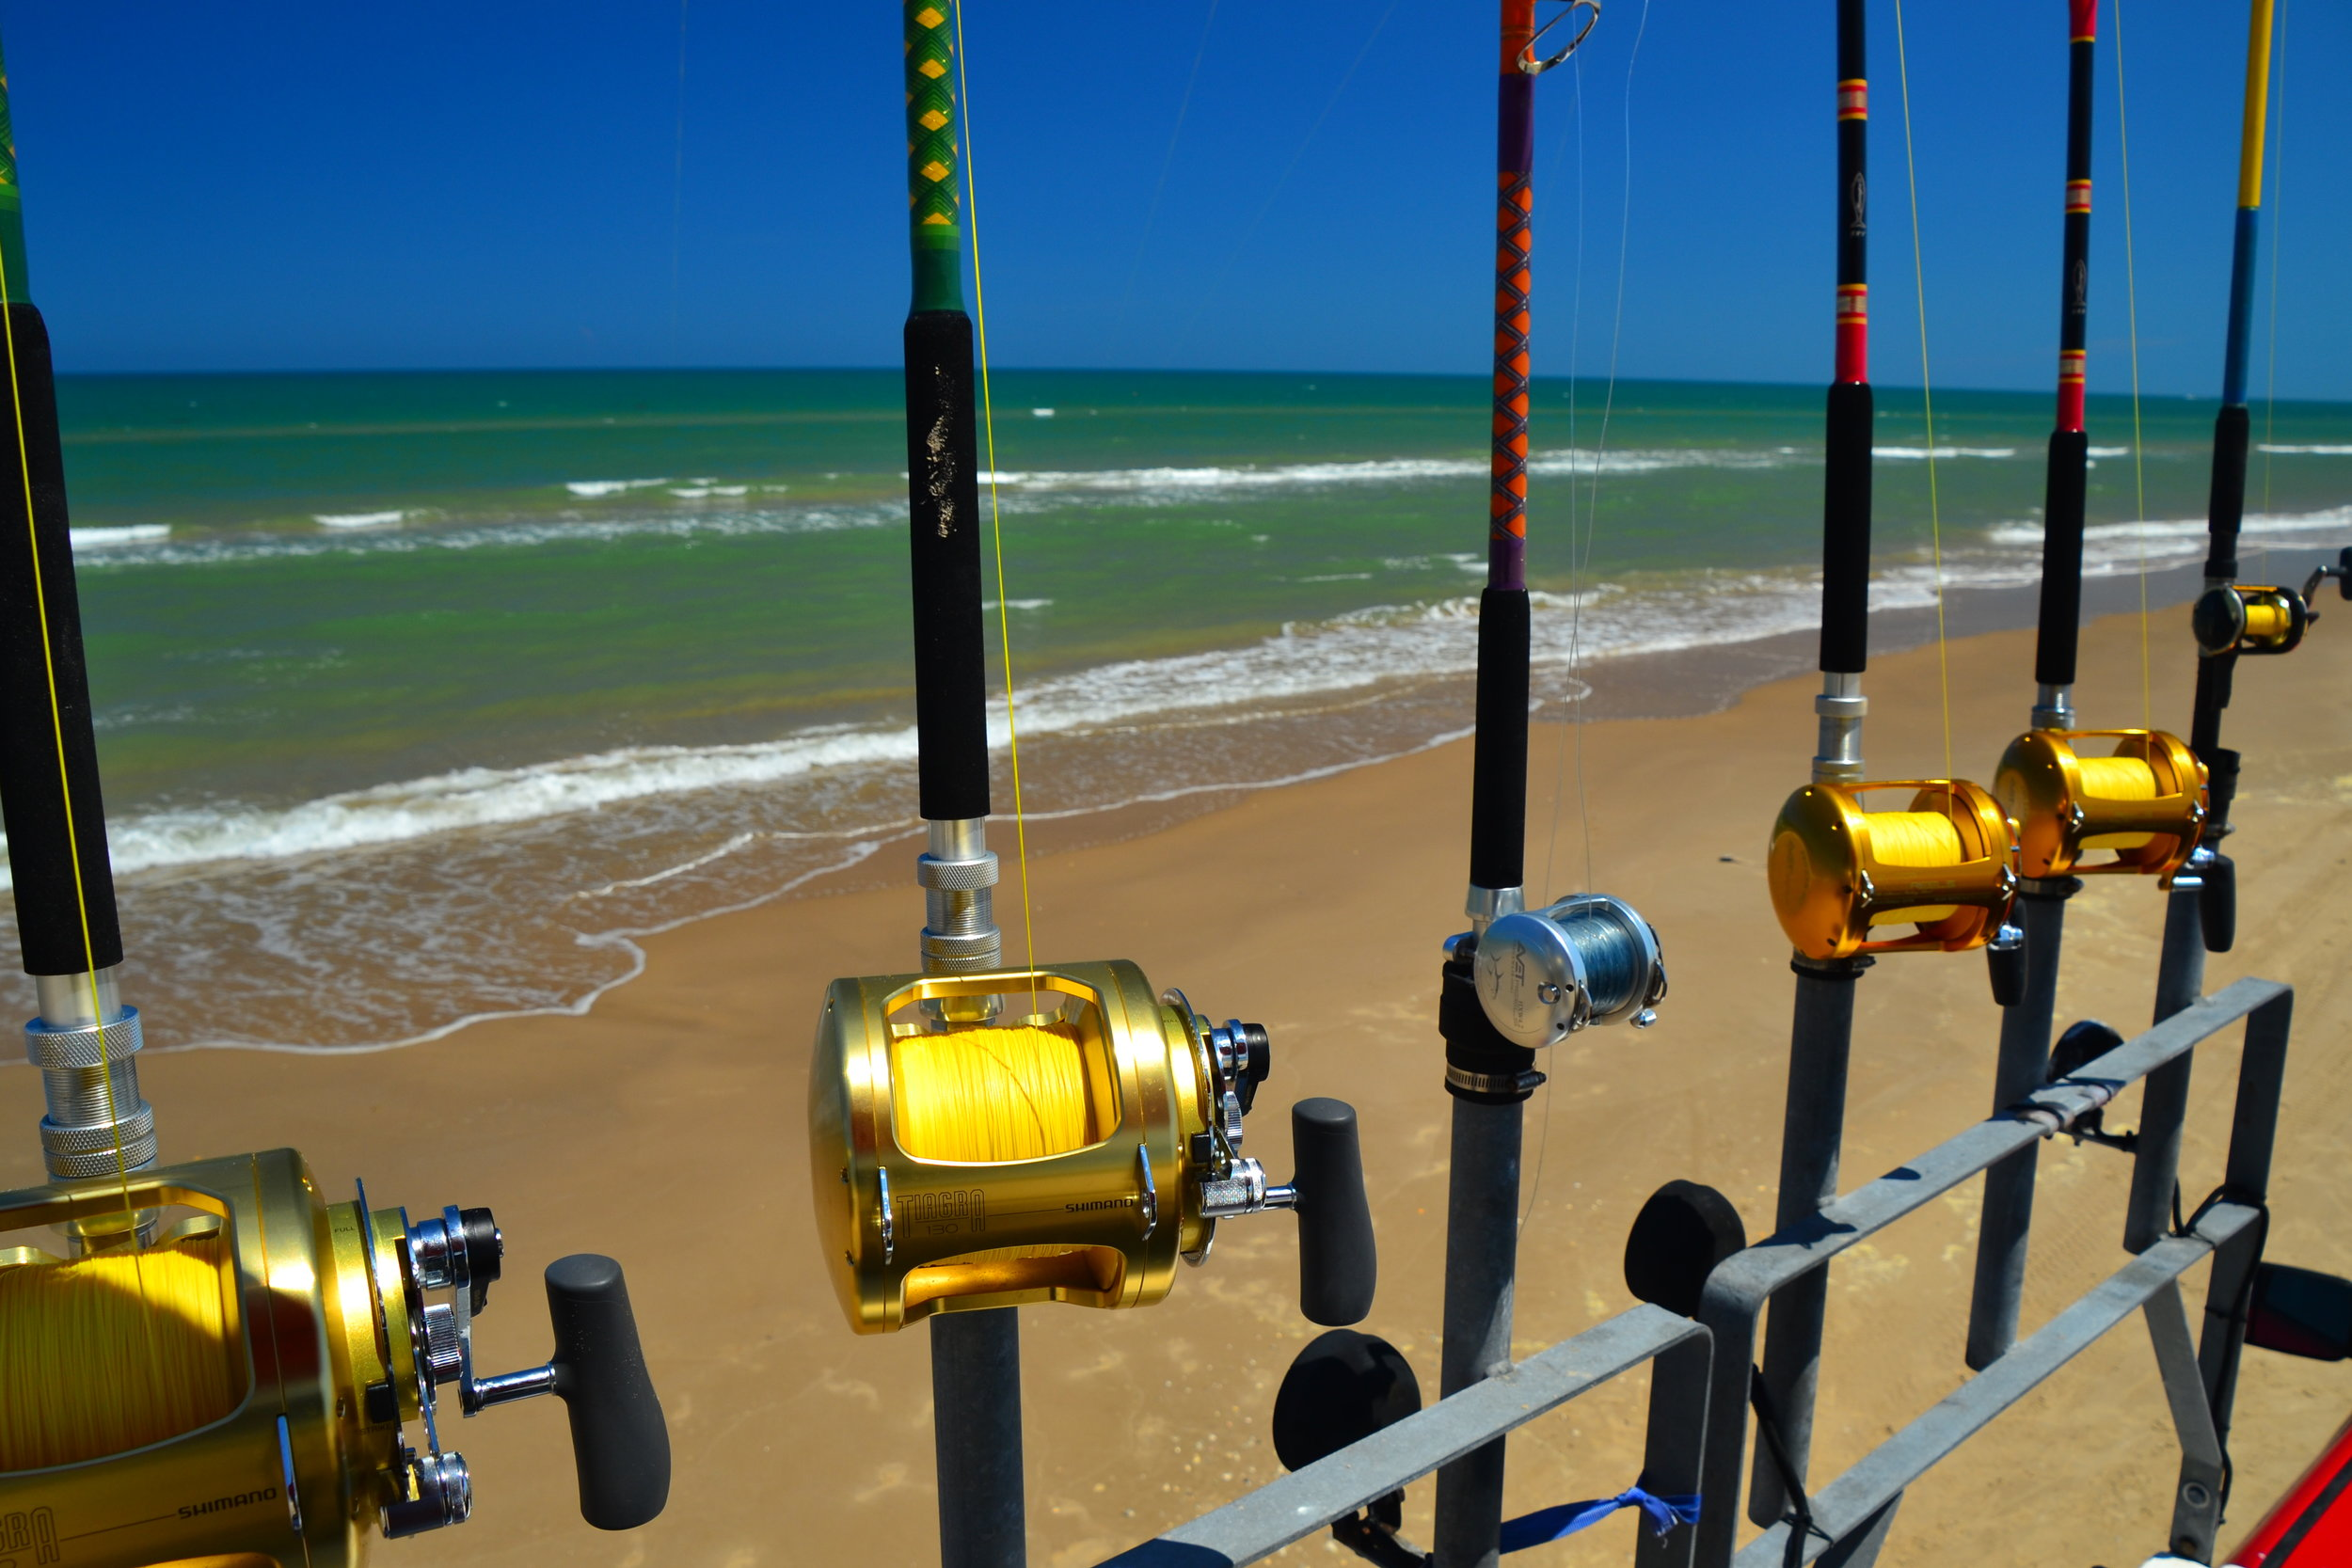 Shark fishing rods and reels.